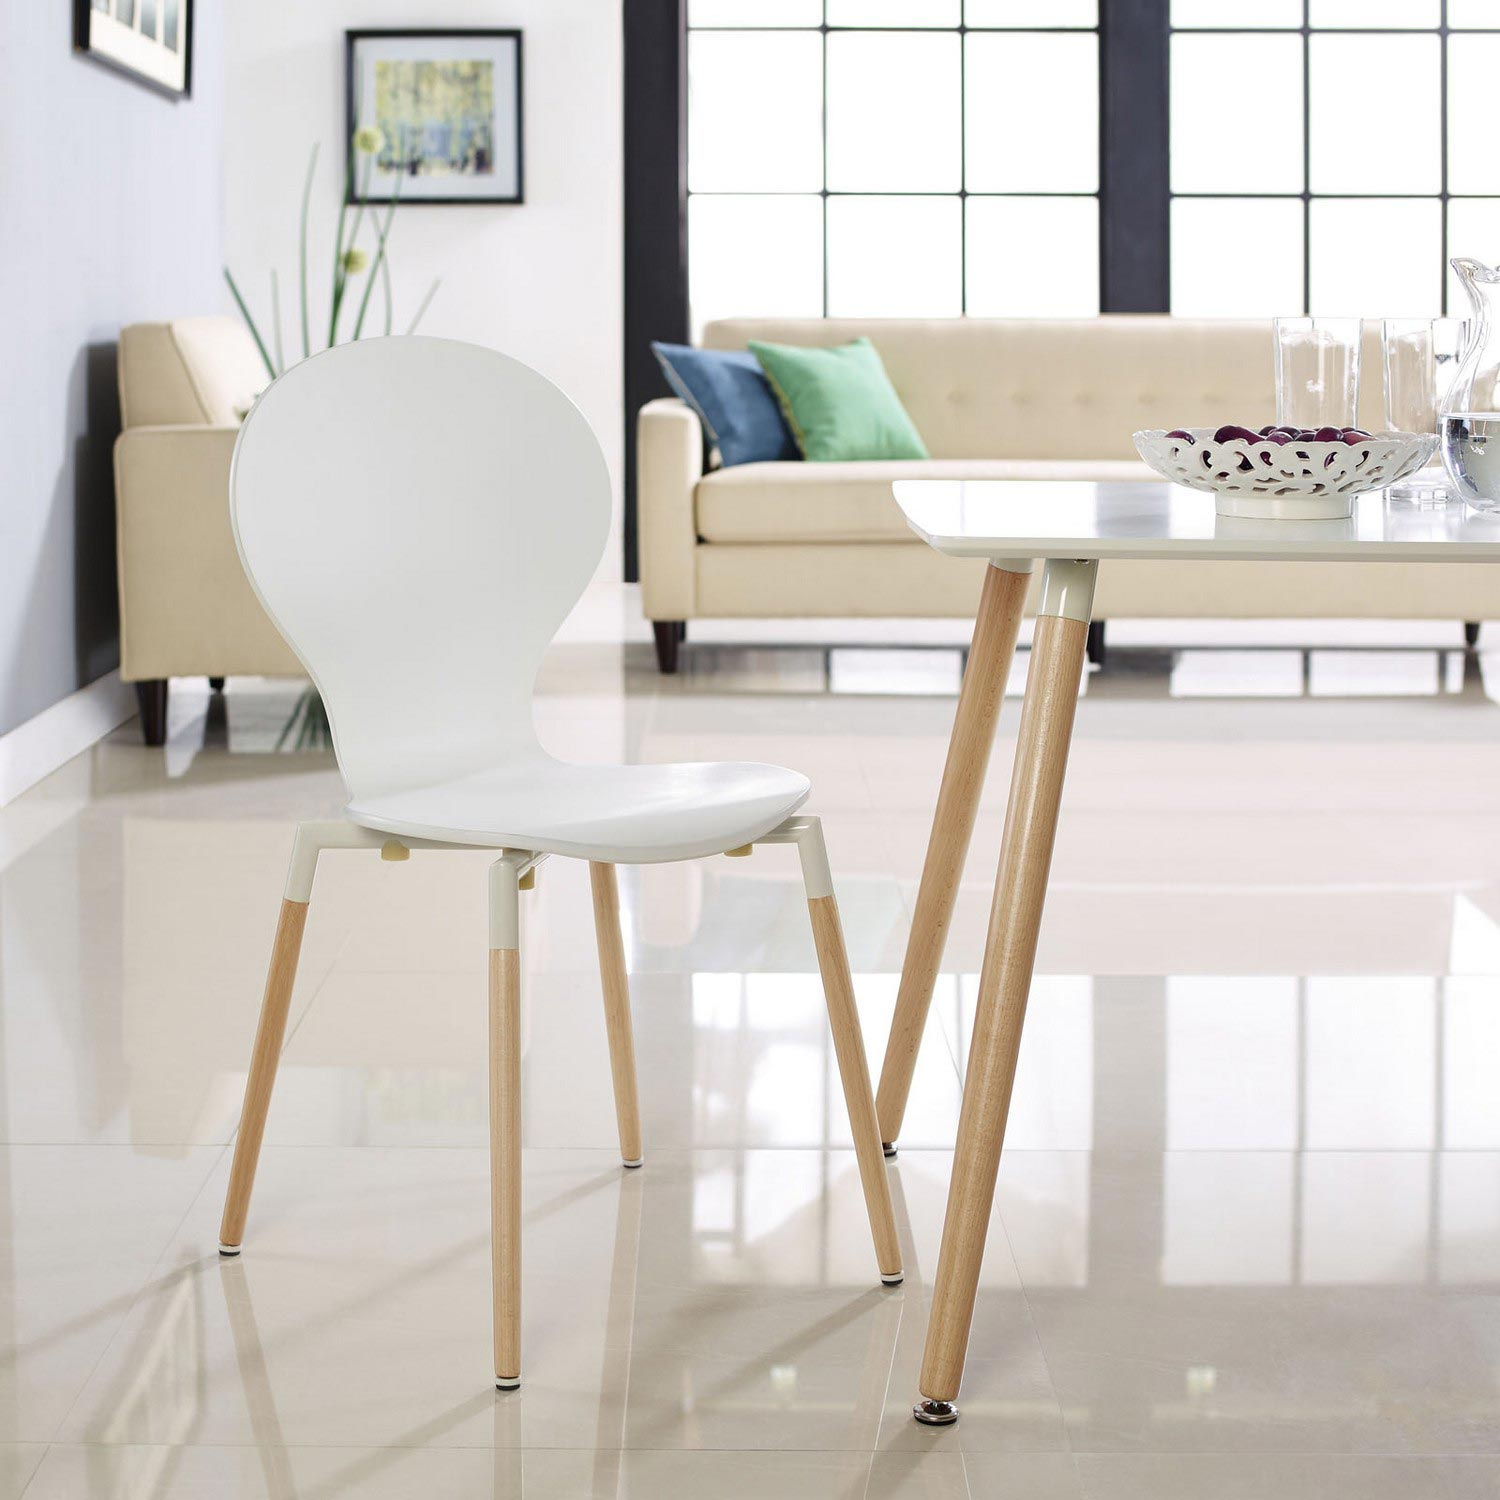 Modway Path Dining Side Chair - White